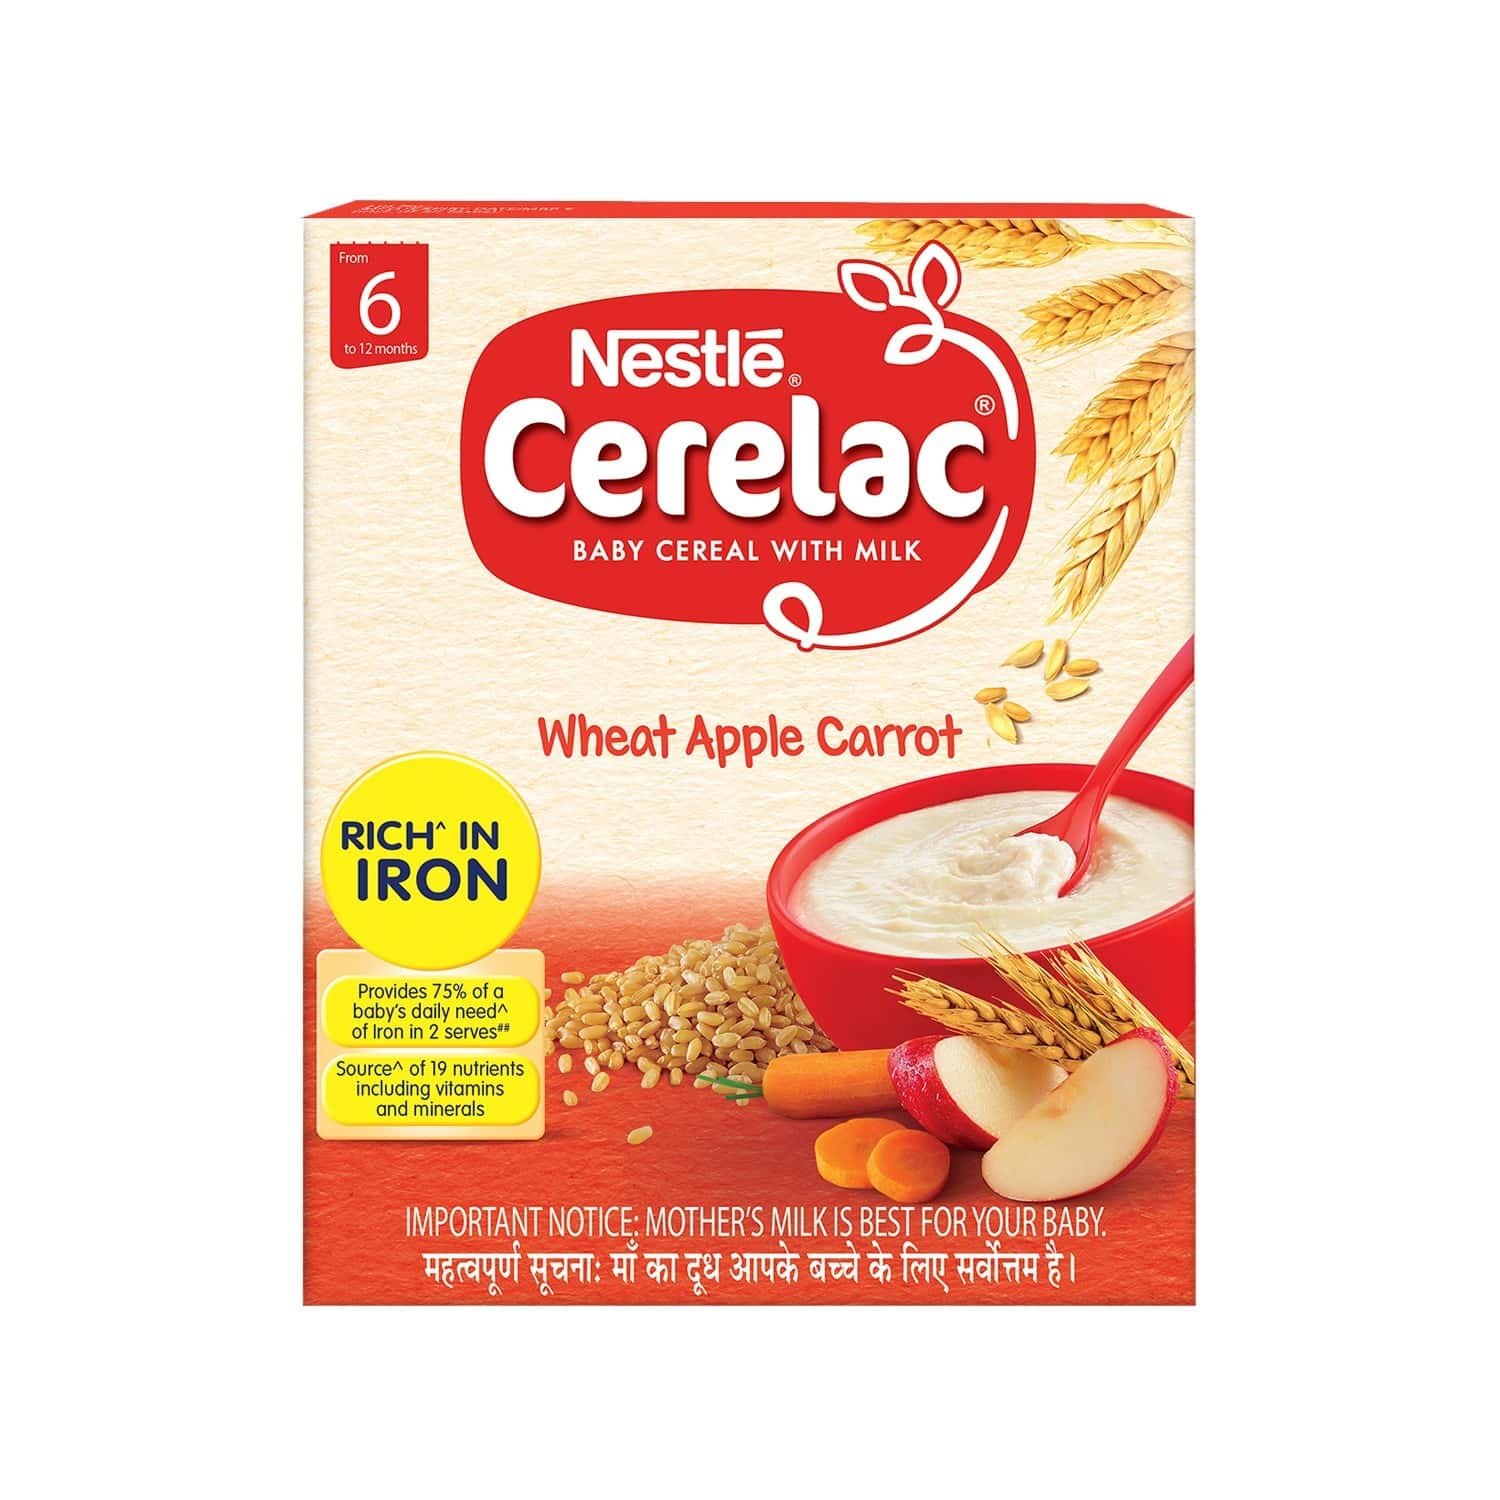 Nestle Cerelac Baby Cereal With Milk Wheat Apple Carrot Baby Food (from 6 Months) Box Of 300 G